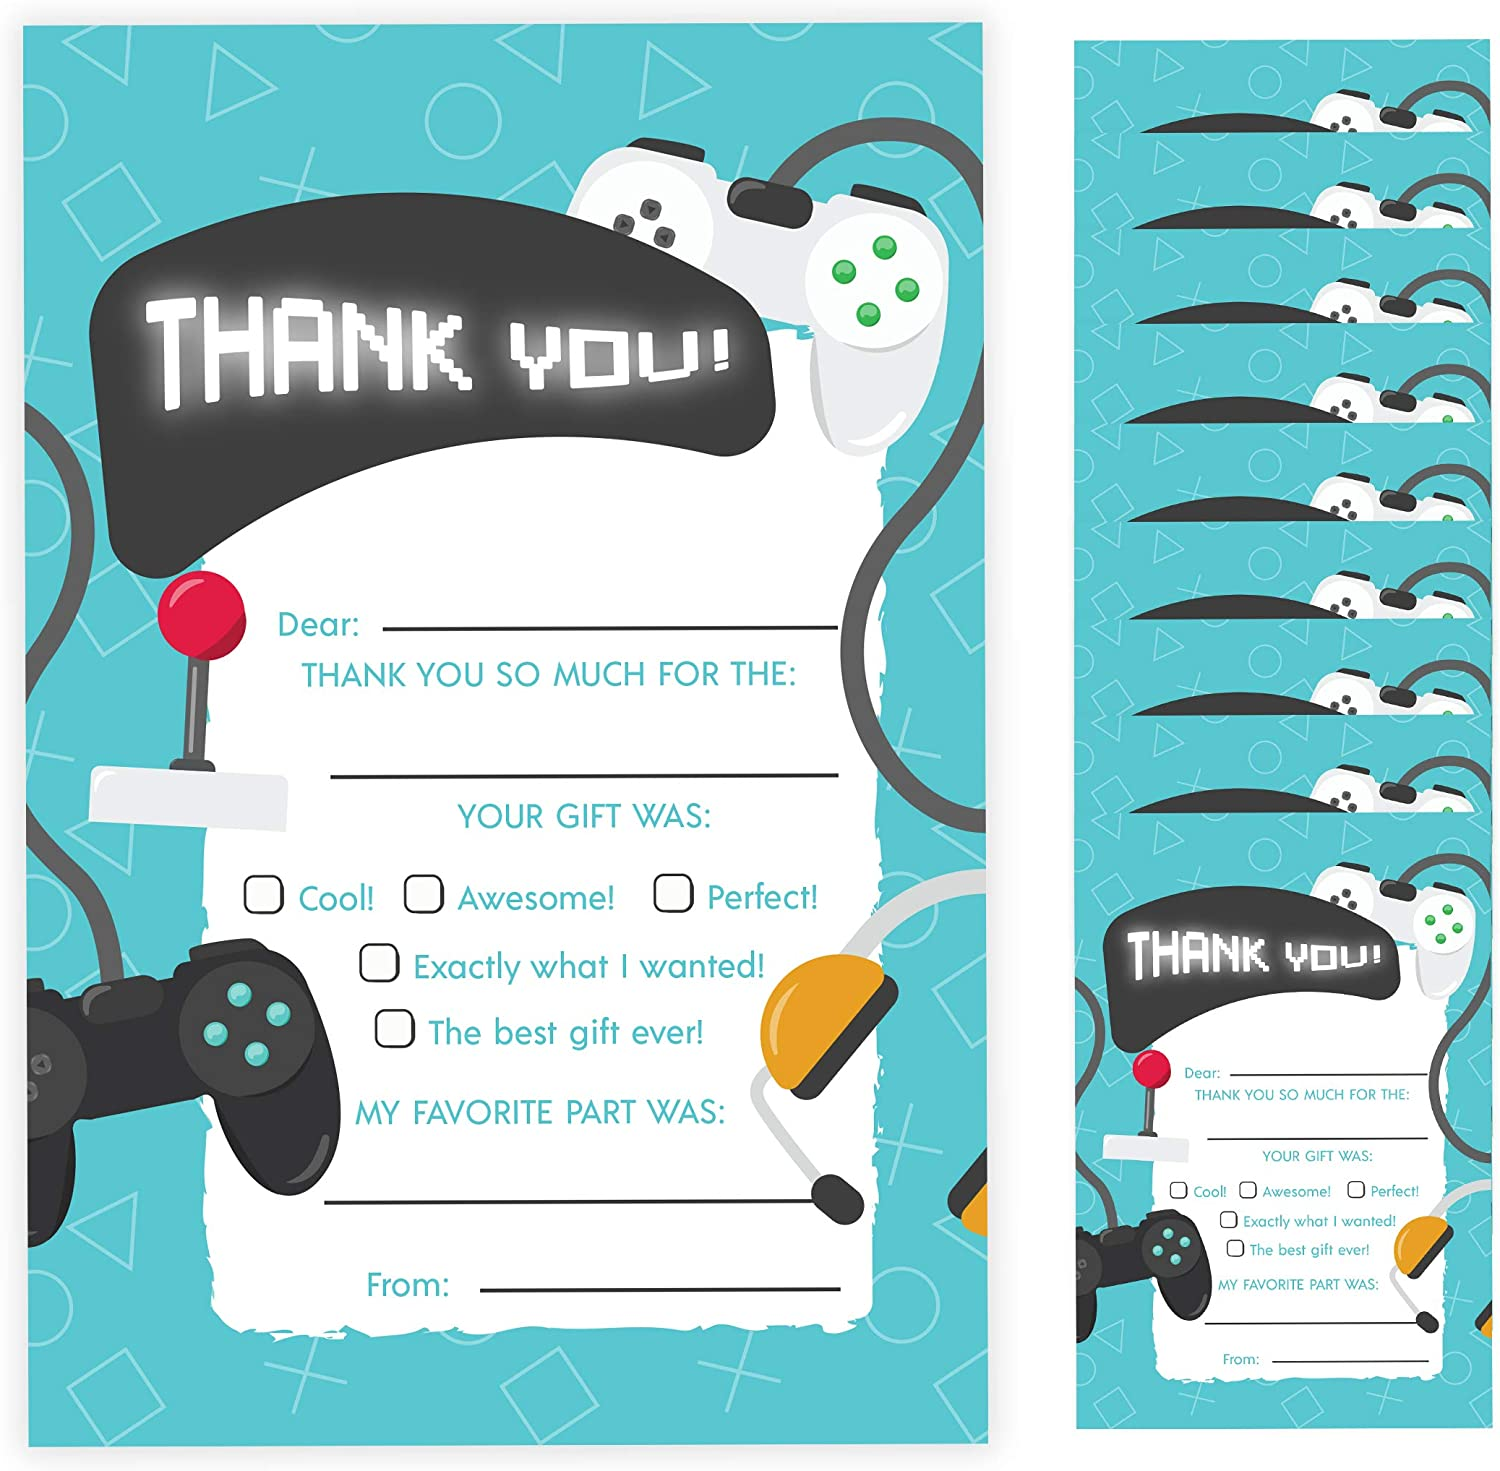 10 Count With Envelopes Bulk Birthday Party Bridal Blank Graduation Kids Children Boy Girl Baby Shower 10ct. Fill-In Thank You Gamer Thank You Cards